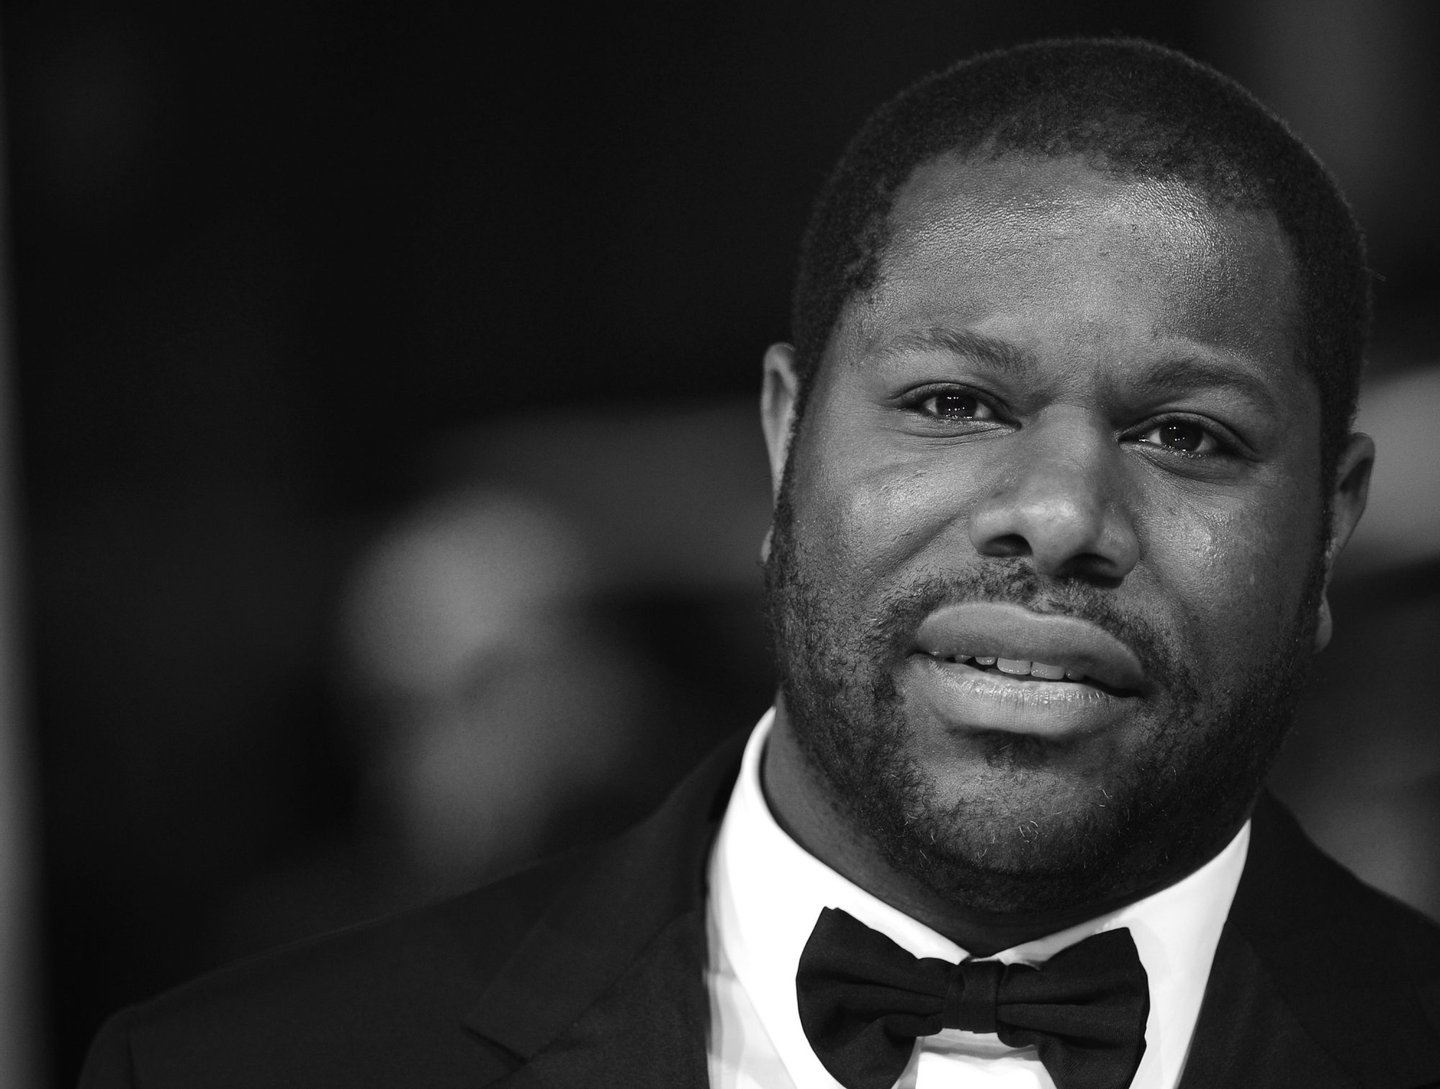 LONDON, ENGLAND - FEBRUARY 16: (EDITORS NOTE: Image has been converted to black and white.) Steve McQueen attends the EE British Academy Film Awards 2014 at The Royal Opera House on February 16, 2014 in London, England. (Photo by Anthony Harvey/Getty Images)